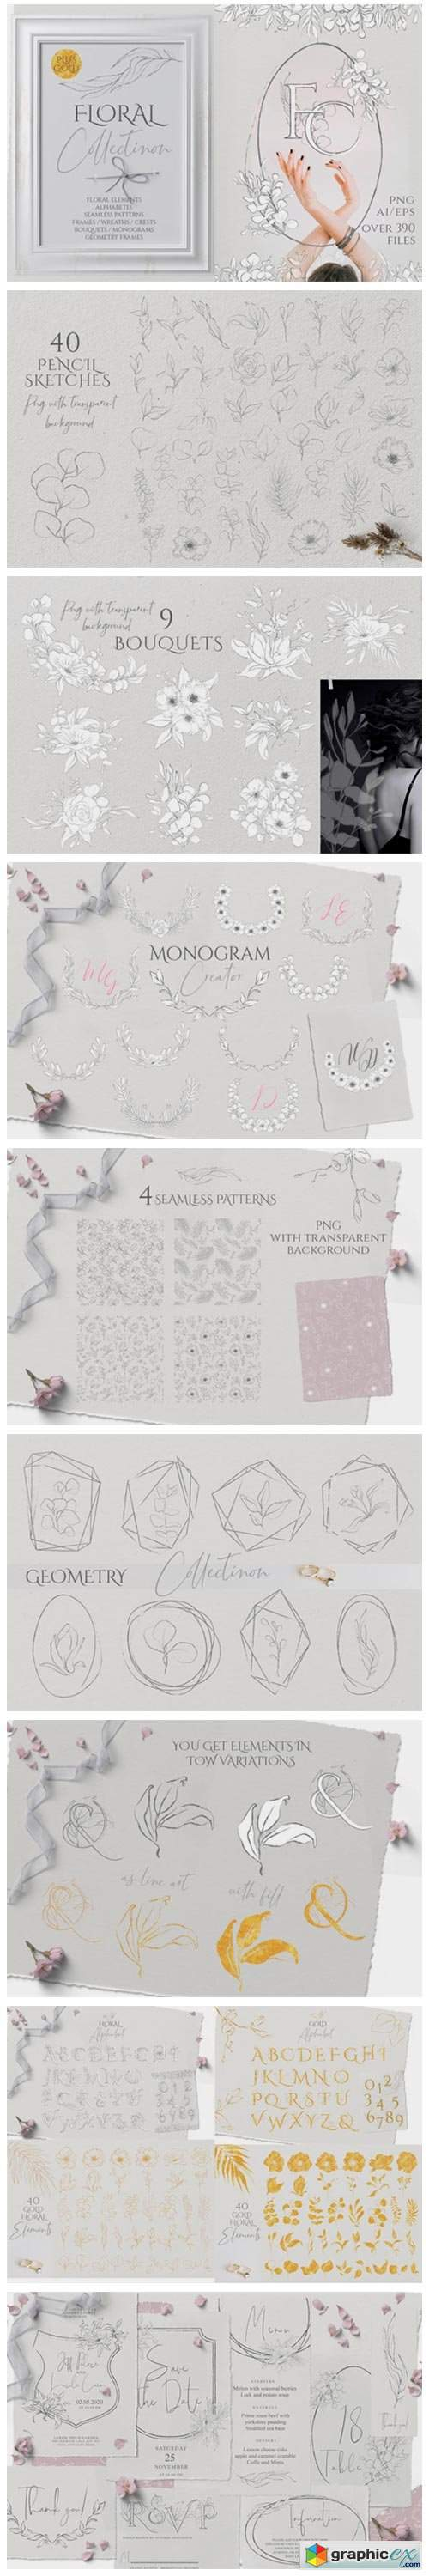 Floral Sketch Collection